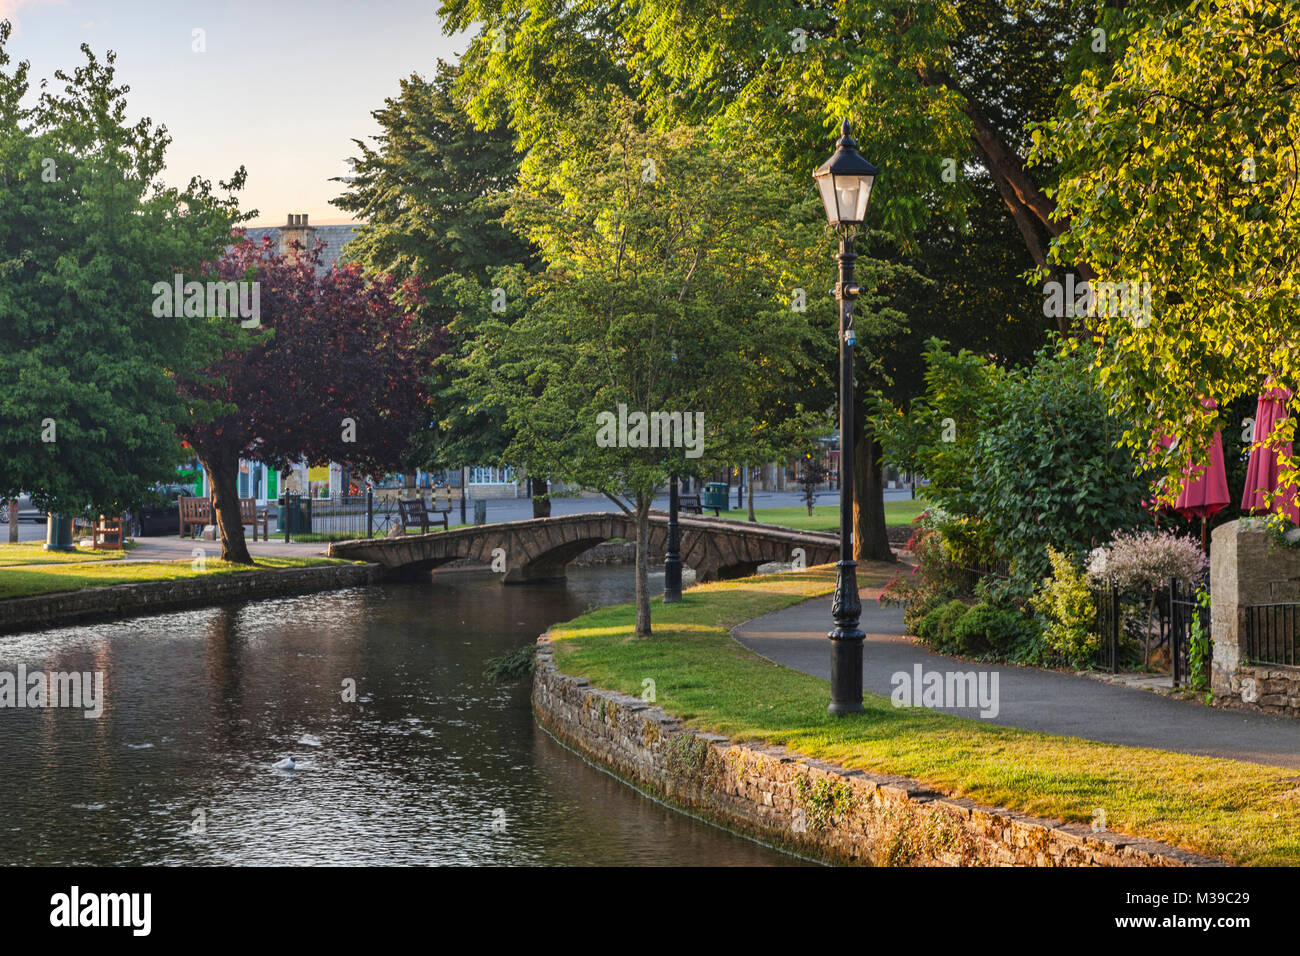 The River Windrush flows under the famous stone bridge in the Cotswolds village of Bourton-on-the-Water, Gloucestershire, - Stock Image